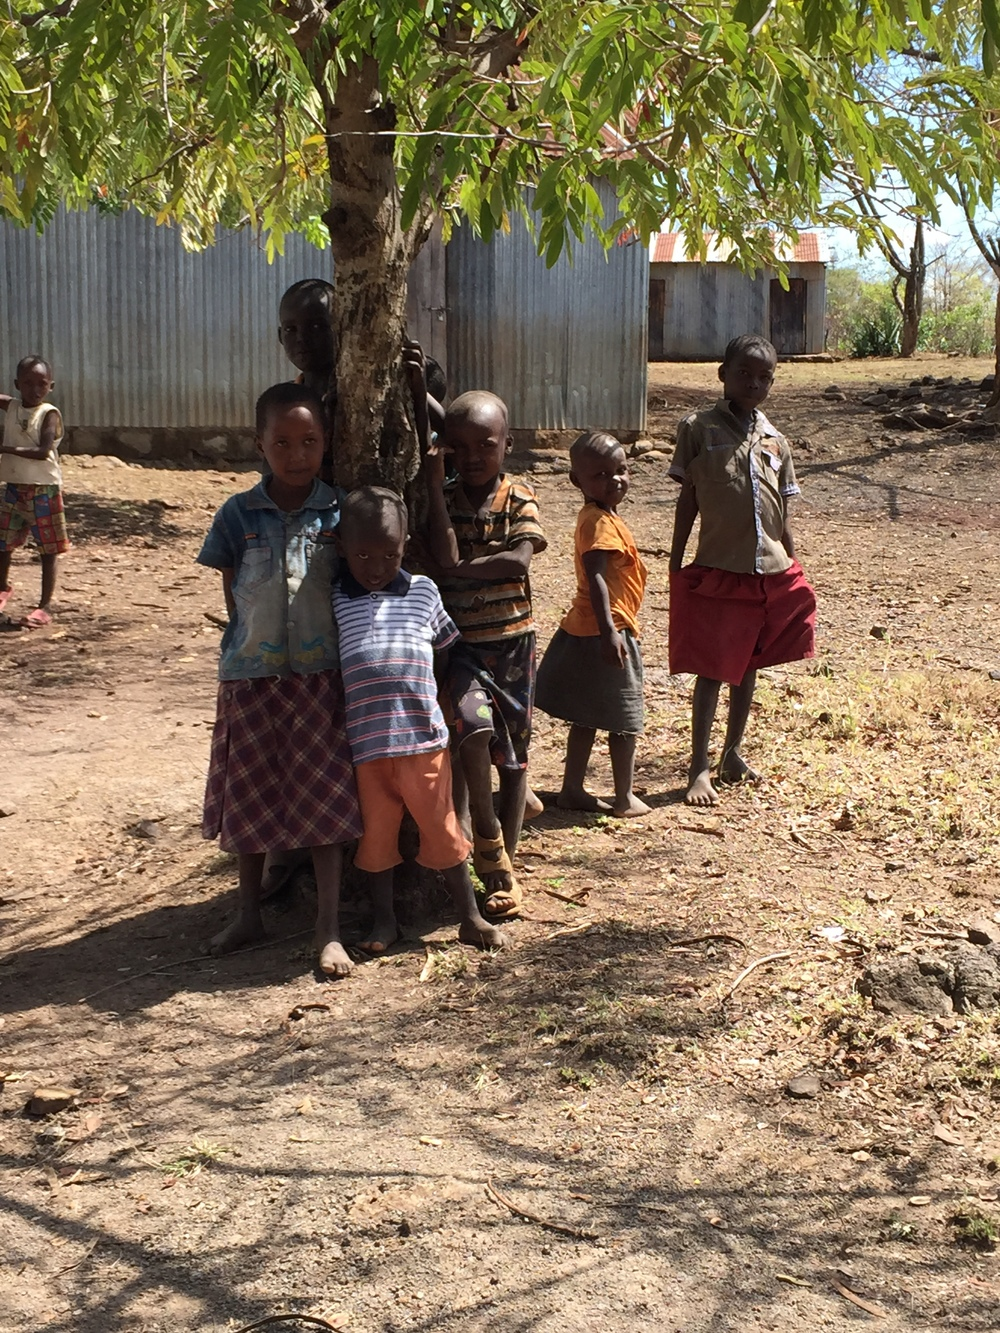 A group of children at the outreach site.